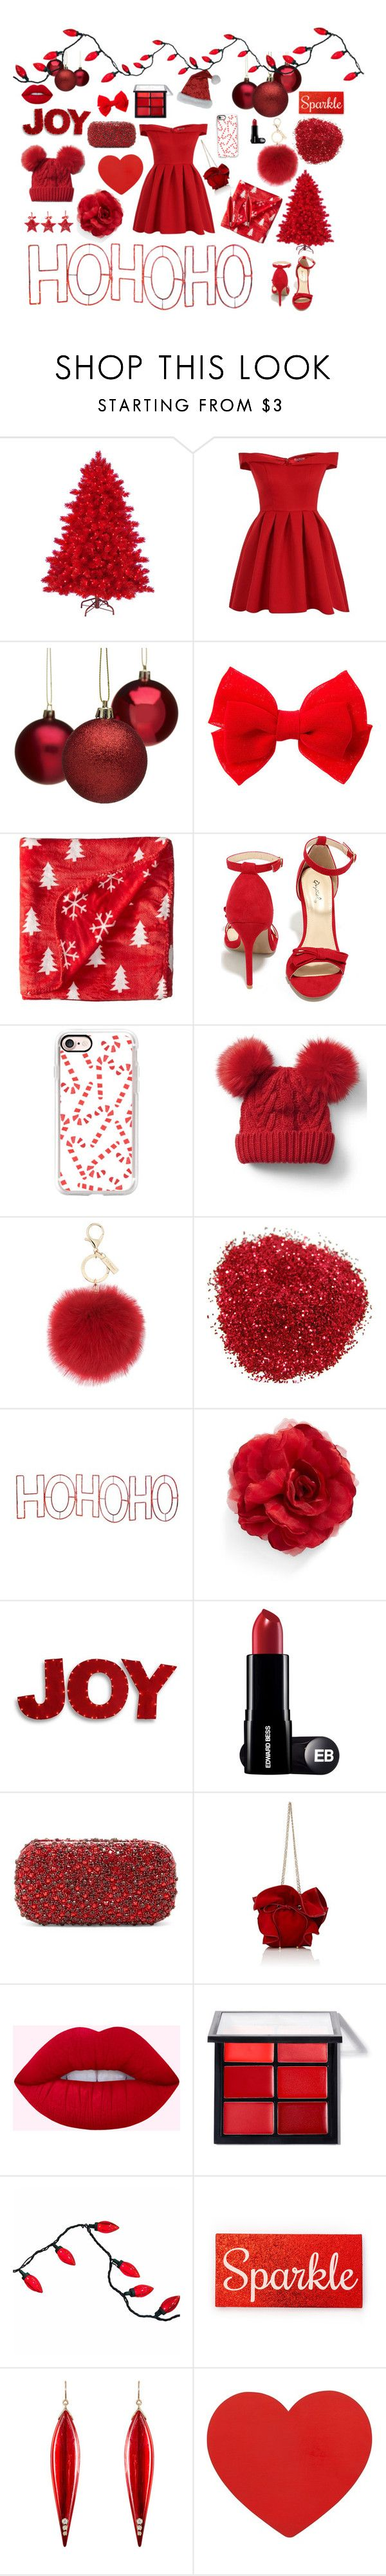 """""""Santa baby"""" by mex2 ❤ liked on Polyvore featuring Chi Chi, Life is good, Qupid, Casetify, Gap, L.K.Bennett, Mr. Christmas, Cara, National Tree Company and Alice + Olivia"""